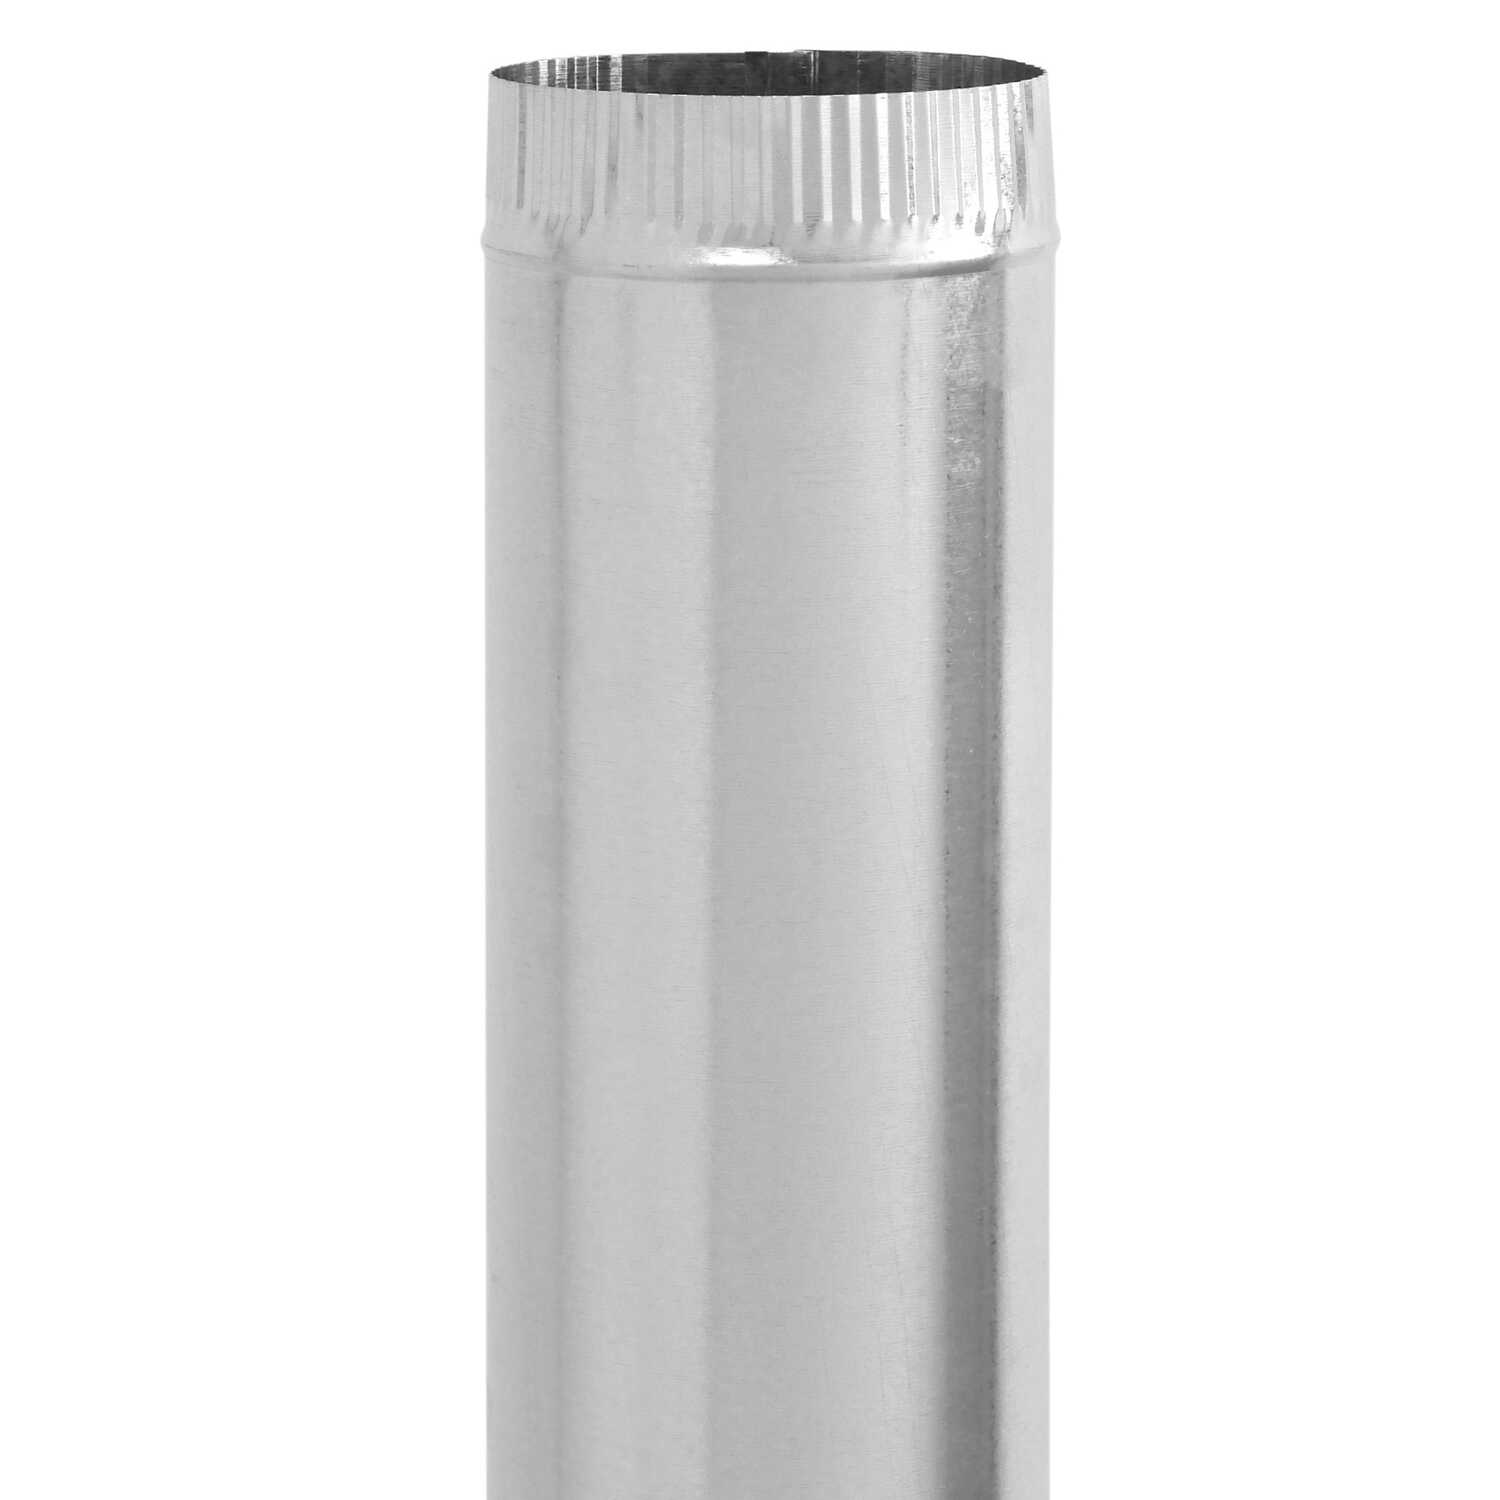 Imperial Manufacturing  6 in. Dia. x 24 in. L Galvanized Steel  Vent Pipe